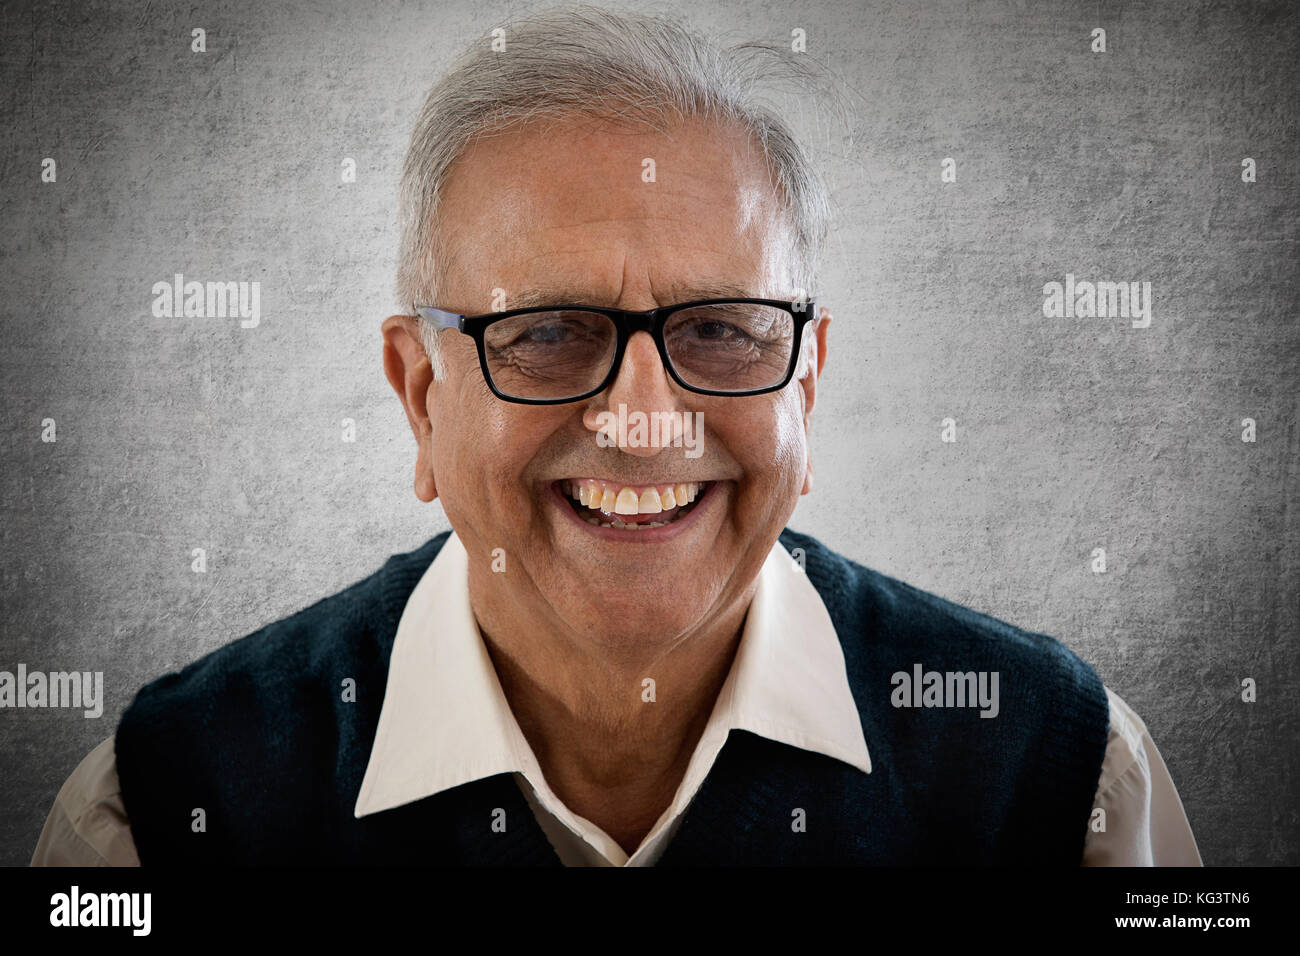 Portrait of smiling elderly man wearing spectacles - Stock Image